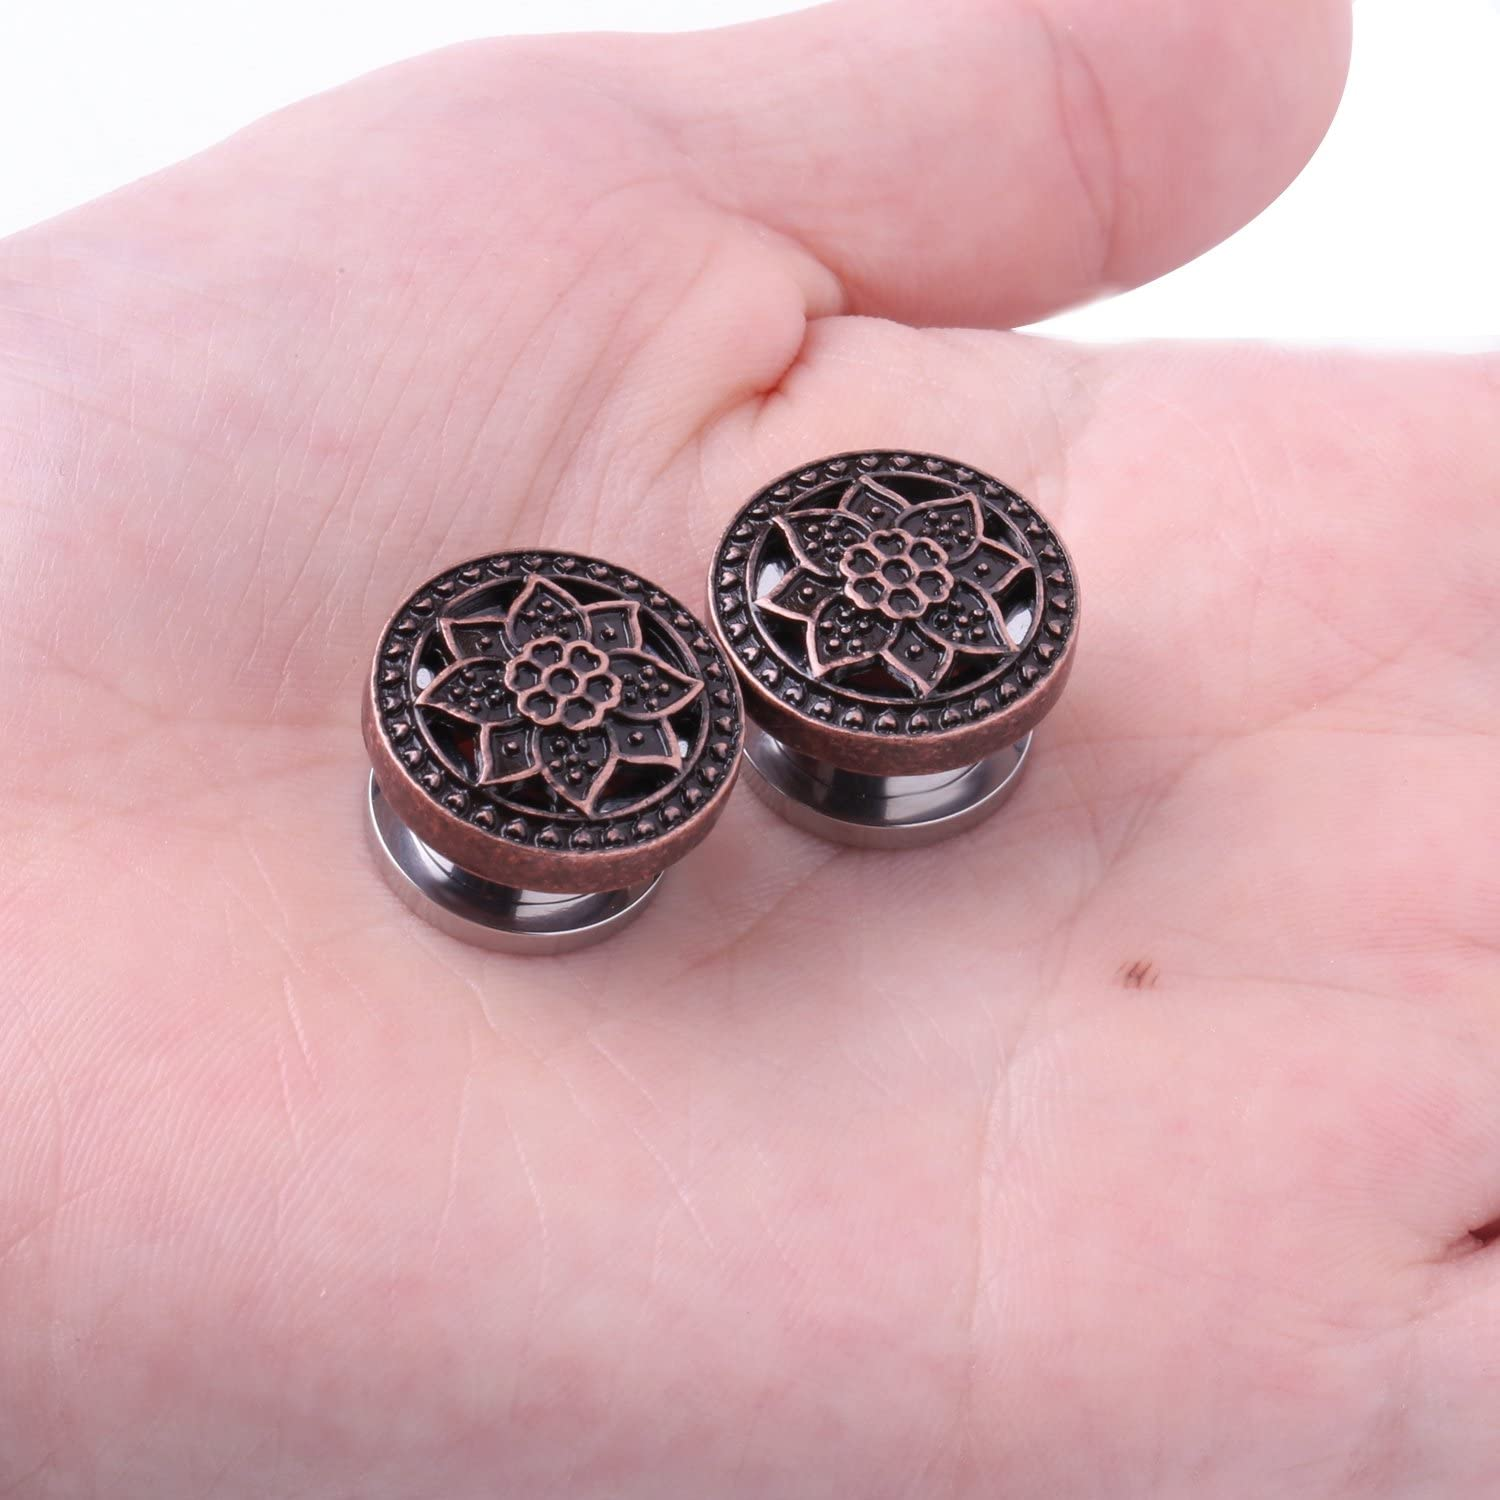 2 Pieces BodyJ4You Screw Fit Plugs Stainless Steel Tribal Lotus 4G-16mm